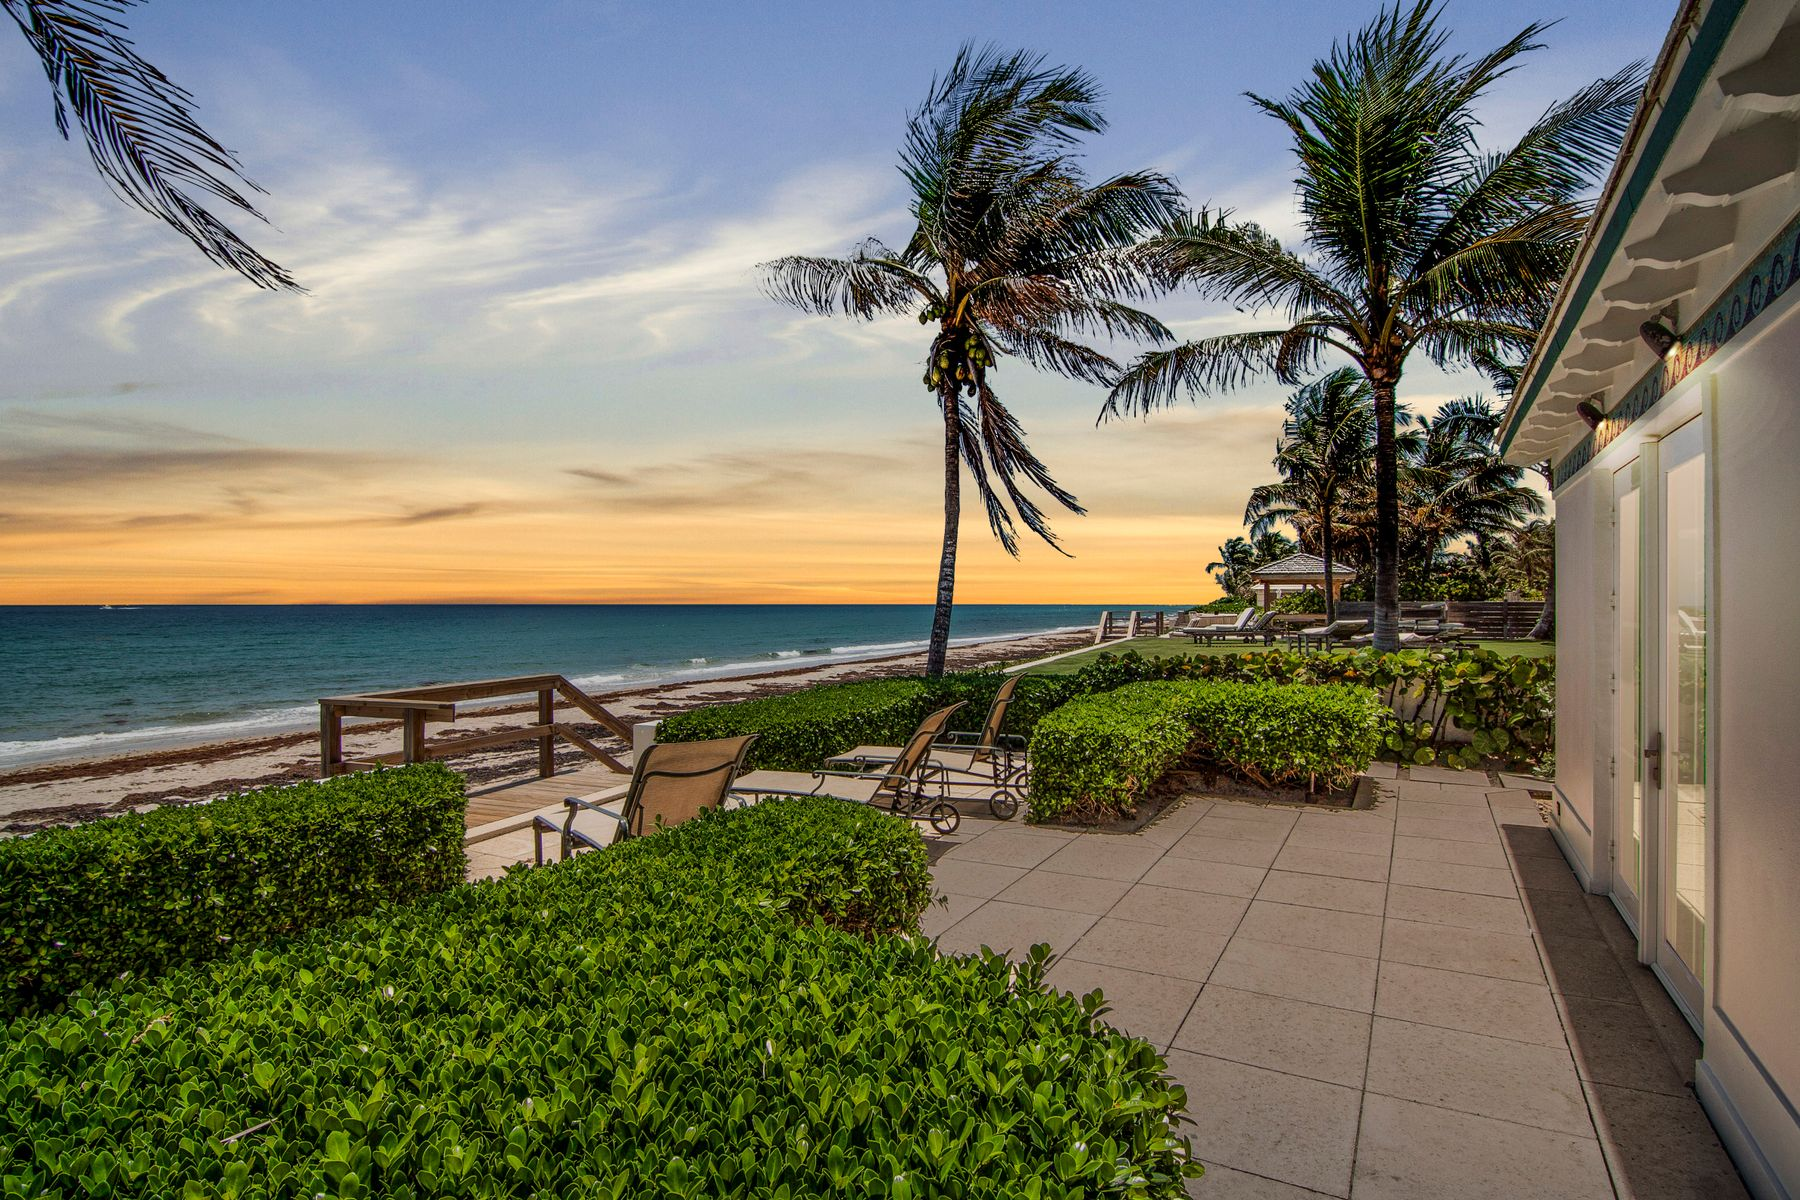 Single Family Homes for Sale at Classic Beach House 101 Nightingale Trl Palm Beach, Florida 33480 United States